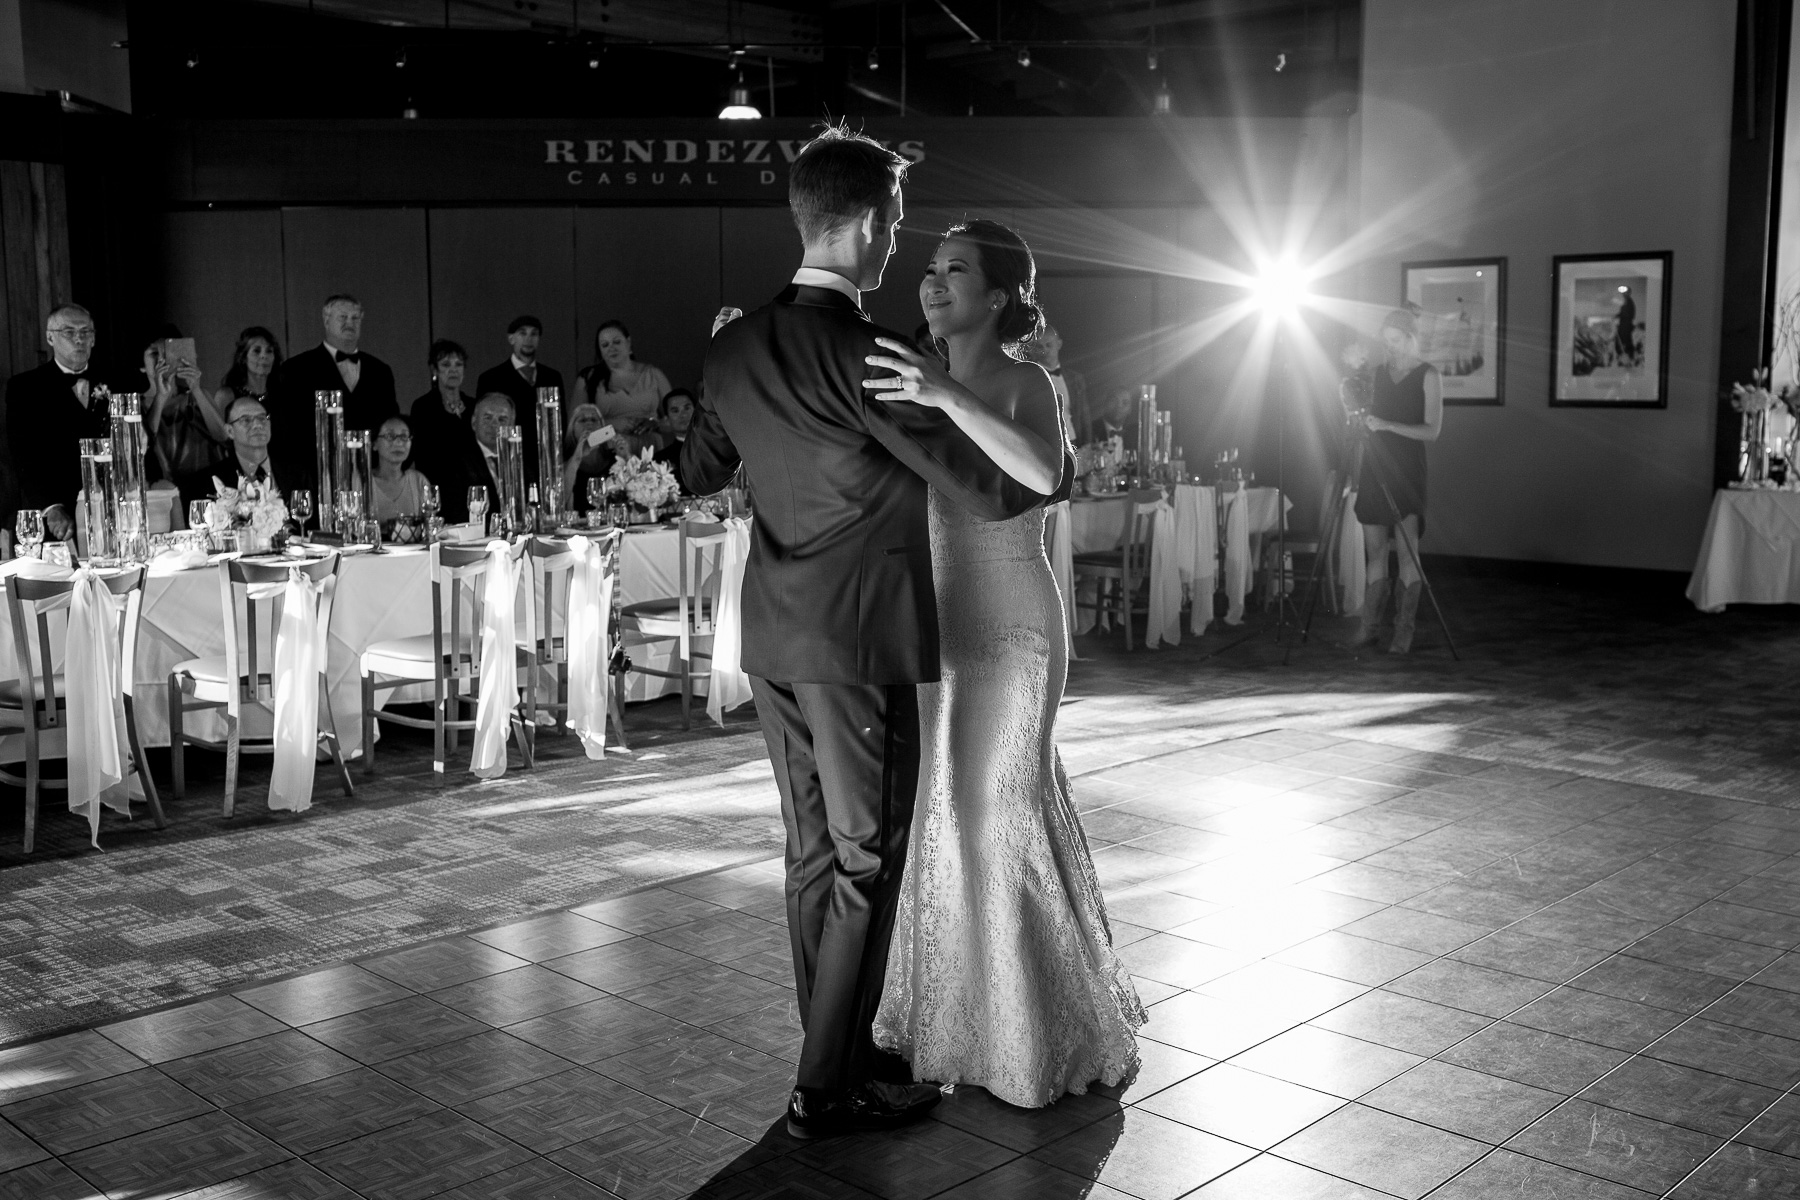 BW bride and groom first dance as their guests watch